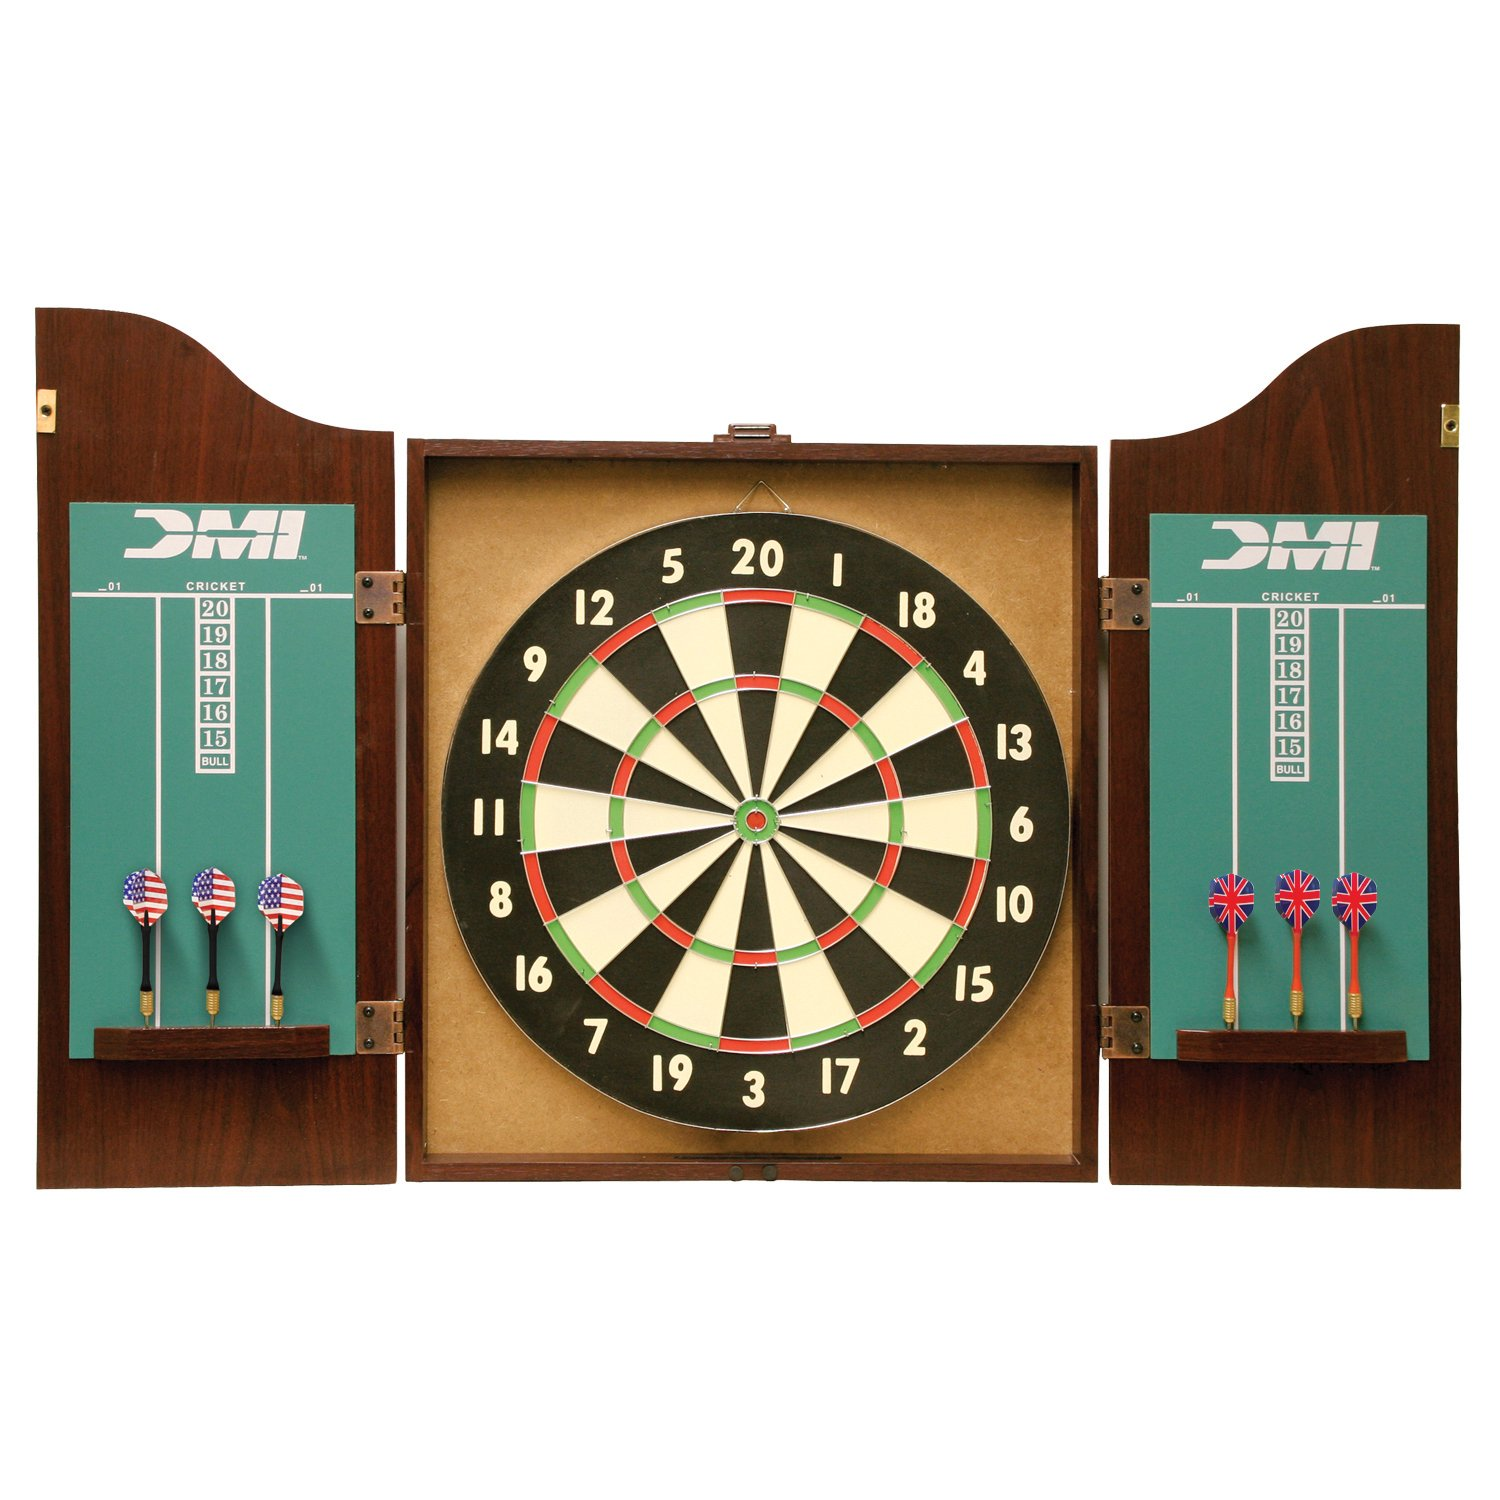 DMI Sports Recreational Bristle Dartboard Cabinet Set Includes Dartboard,  Two Dart Sets, And Traditional